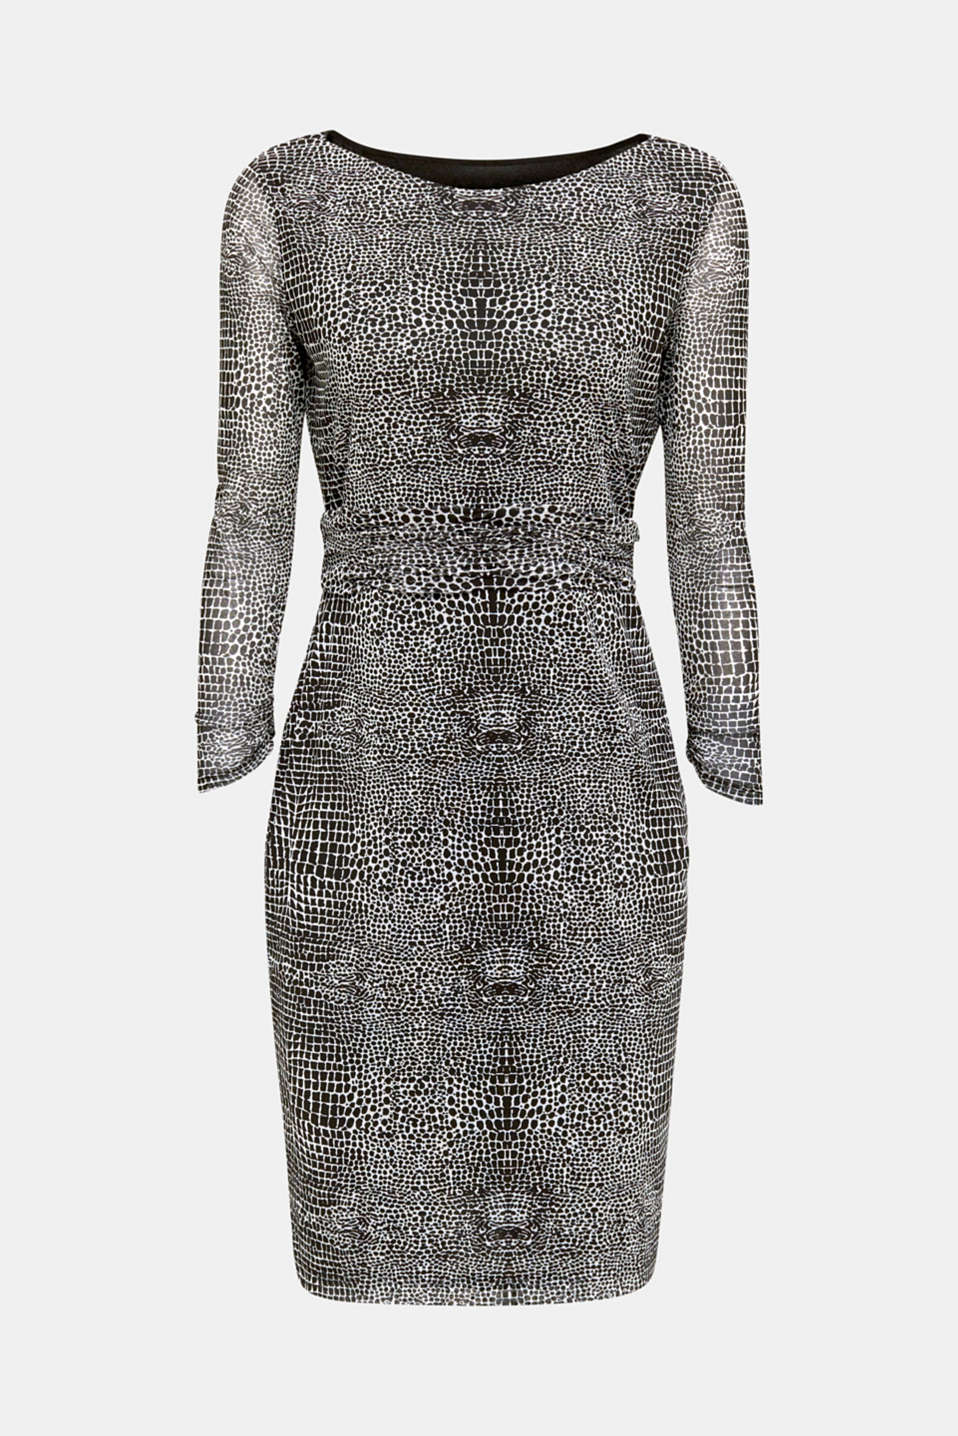 Mesh dress with an all-over print, OFF WHITE 4, detail image number 5